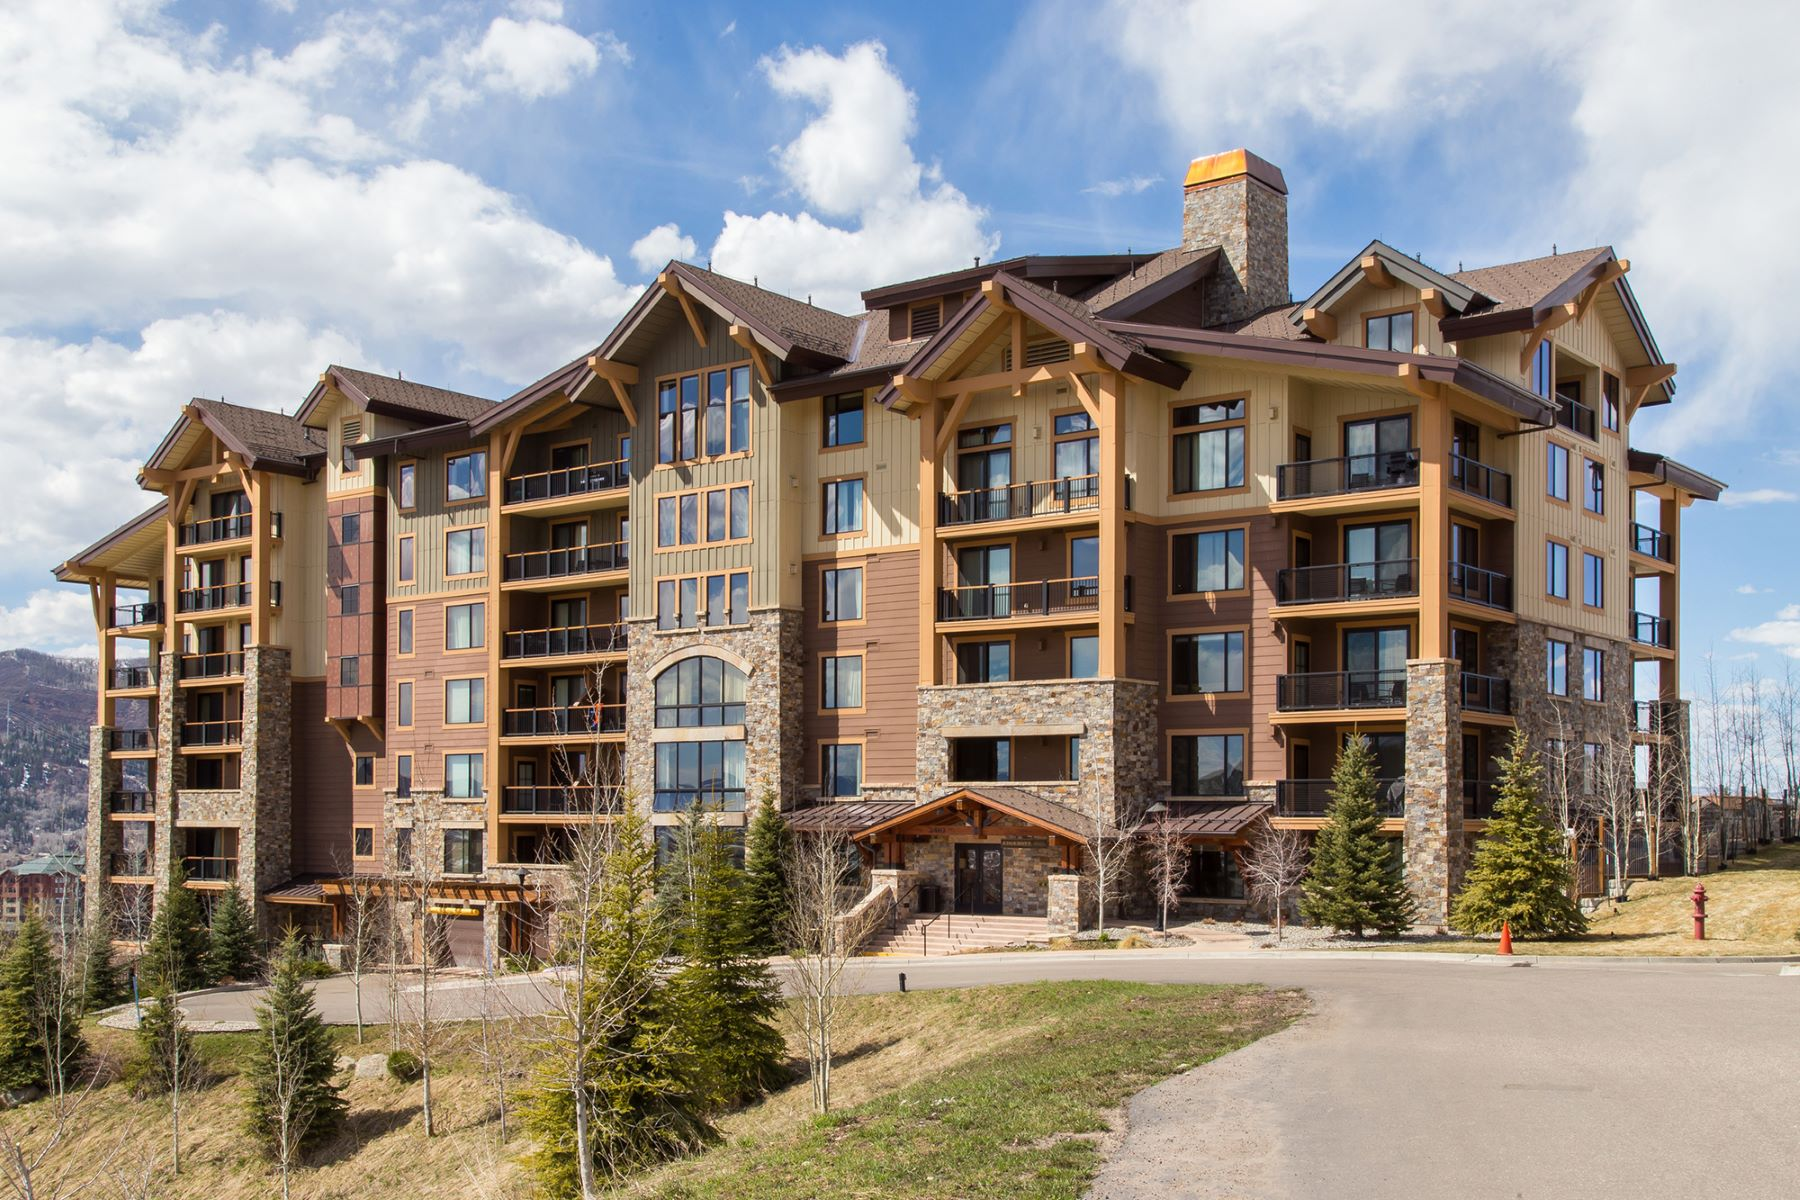 Condominium for Sale at Ski-in/Ski-out Edgemont 2410 Ski Trail Lane, #2506 Steamboat Springs, Colorado 80487 United States